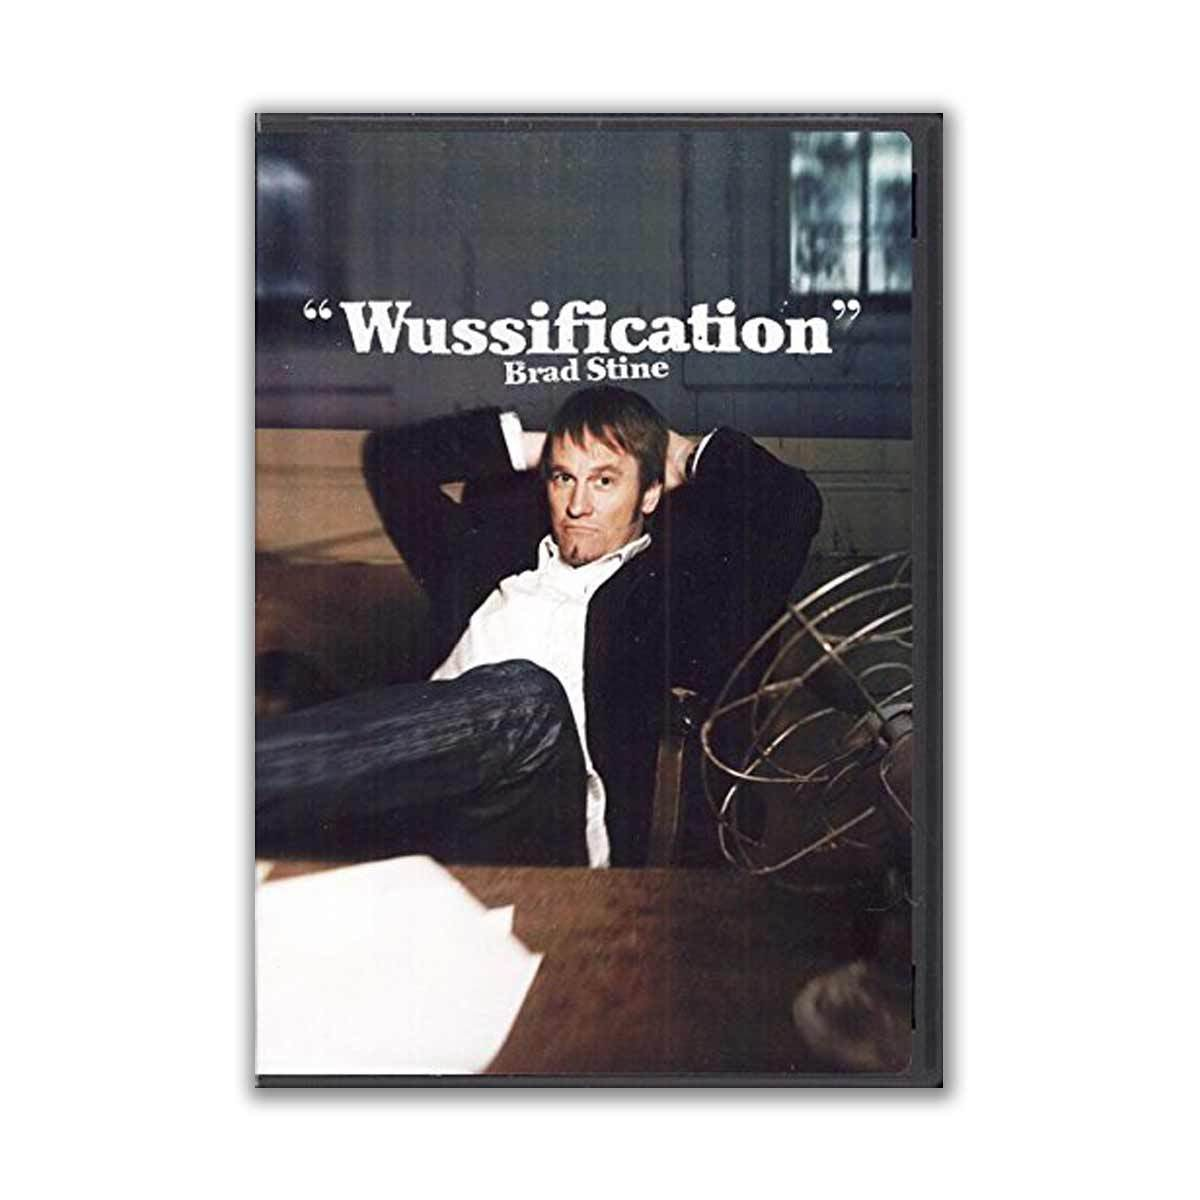 Brad Stine DVD - Wussification